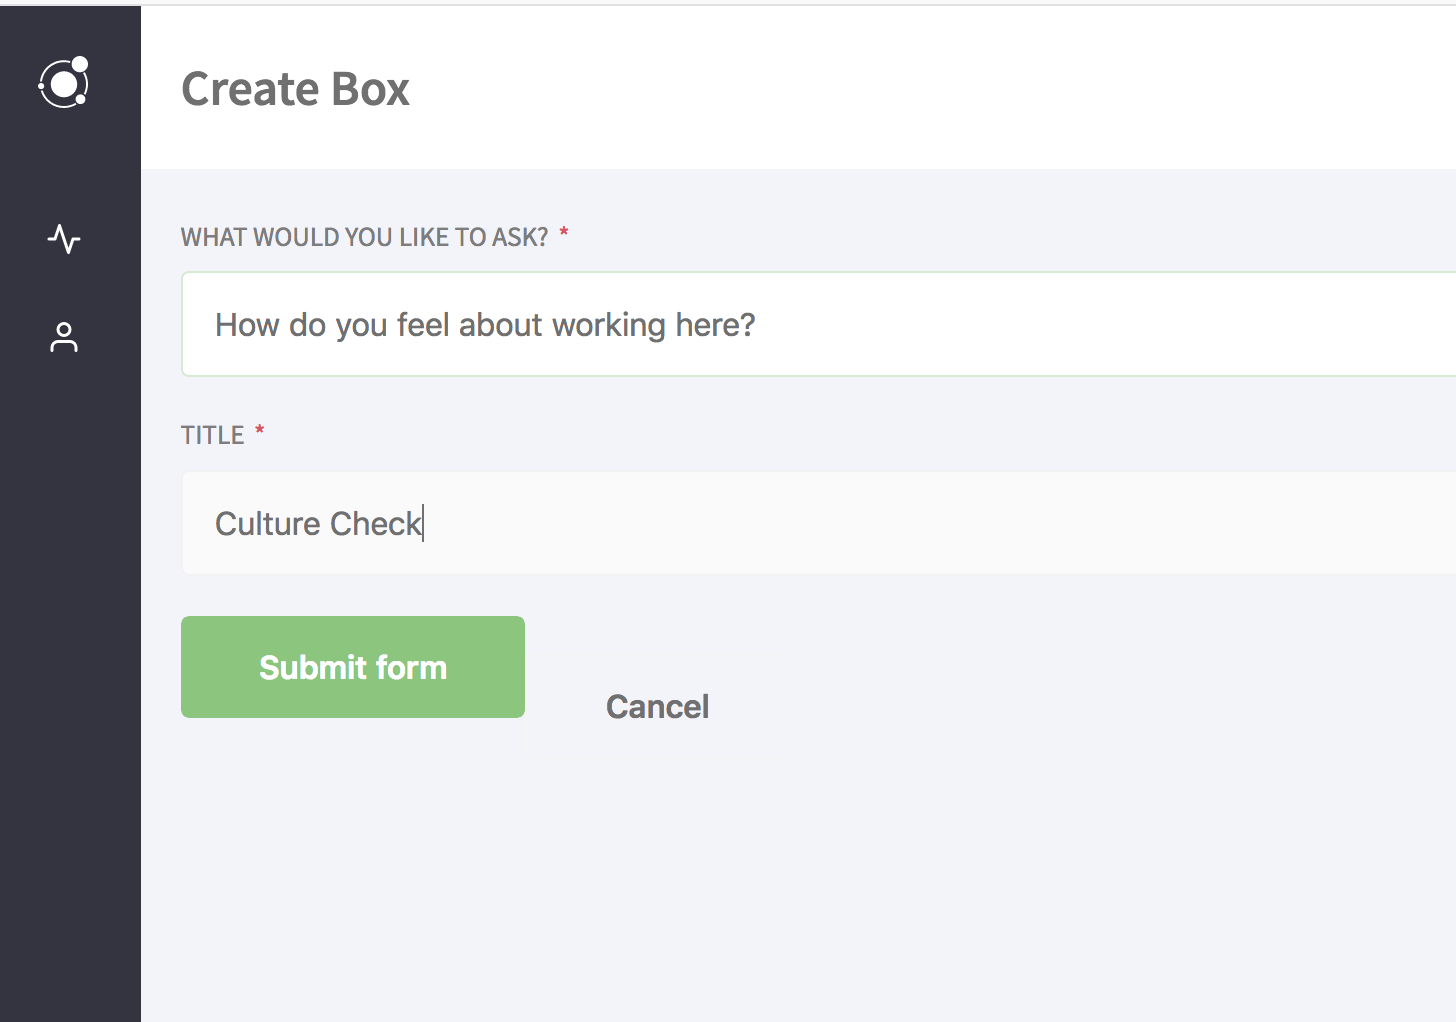 Screenshot example of creating a digital suggestion box in Candidly